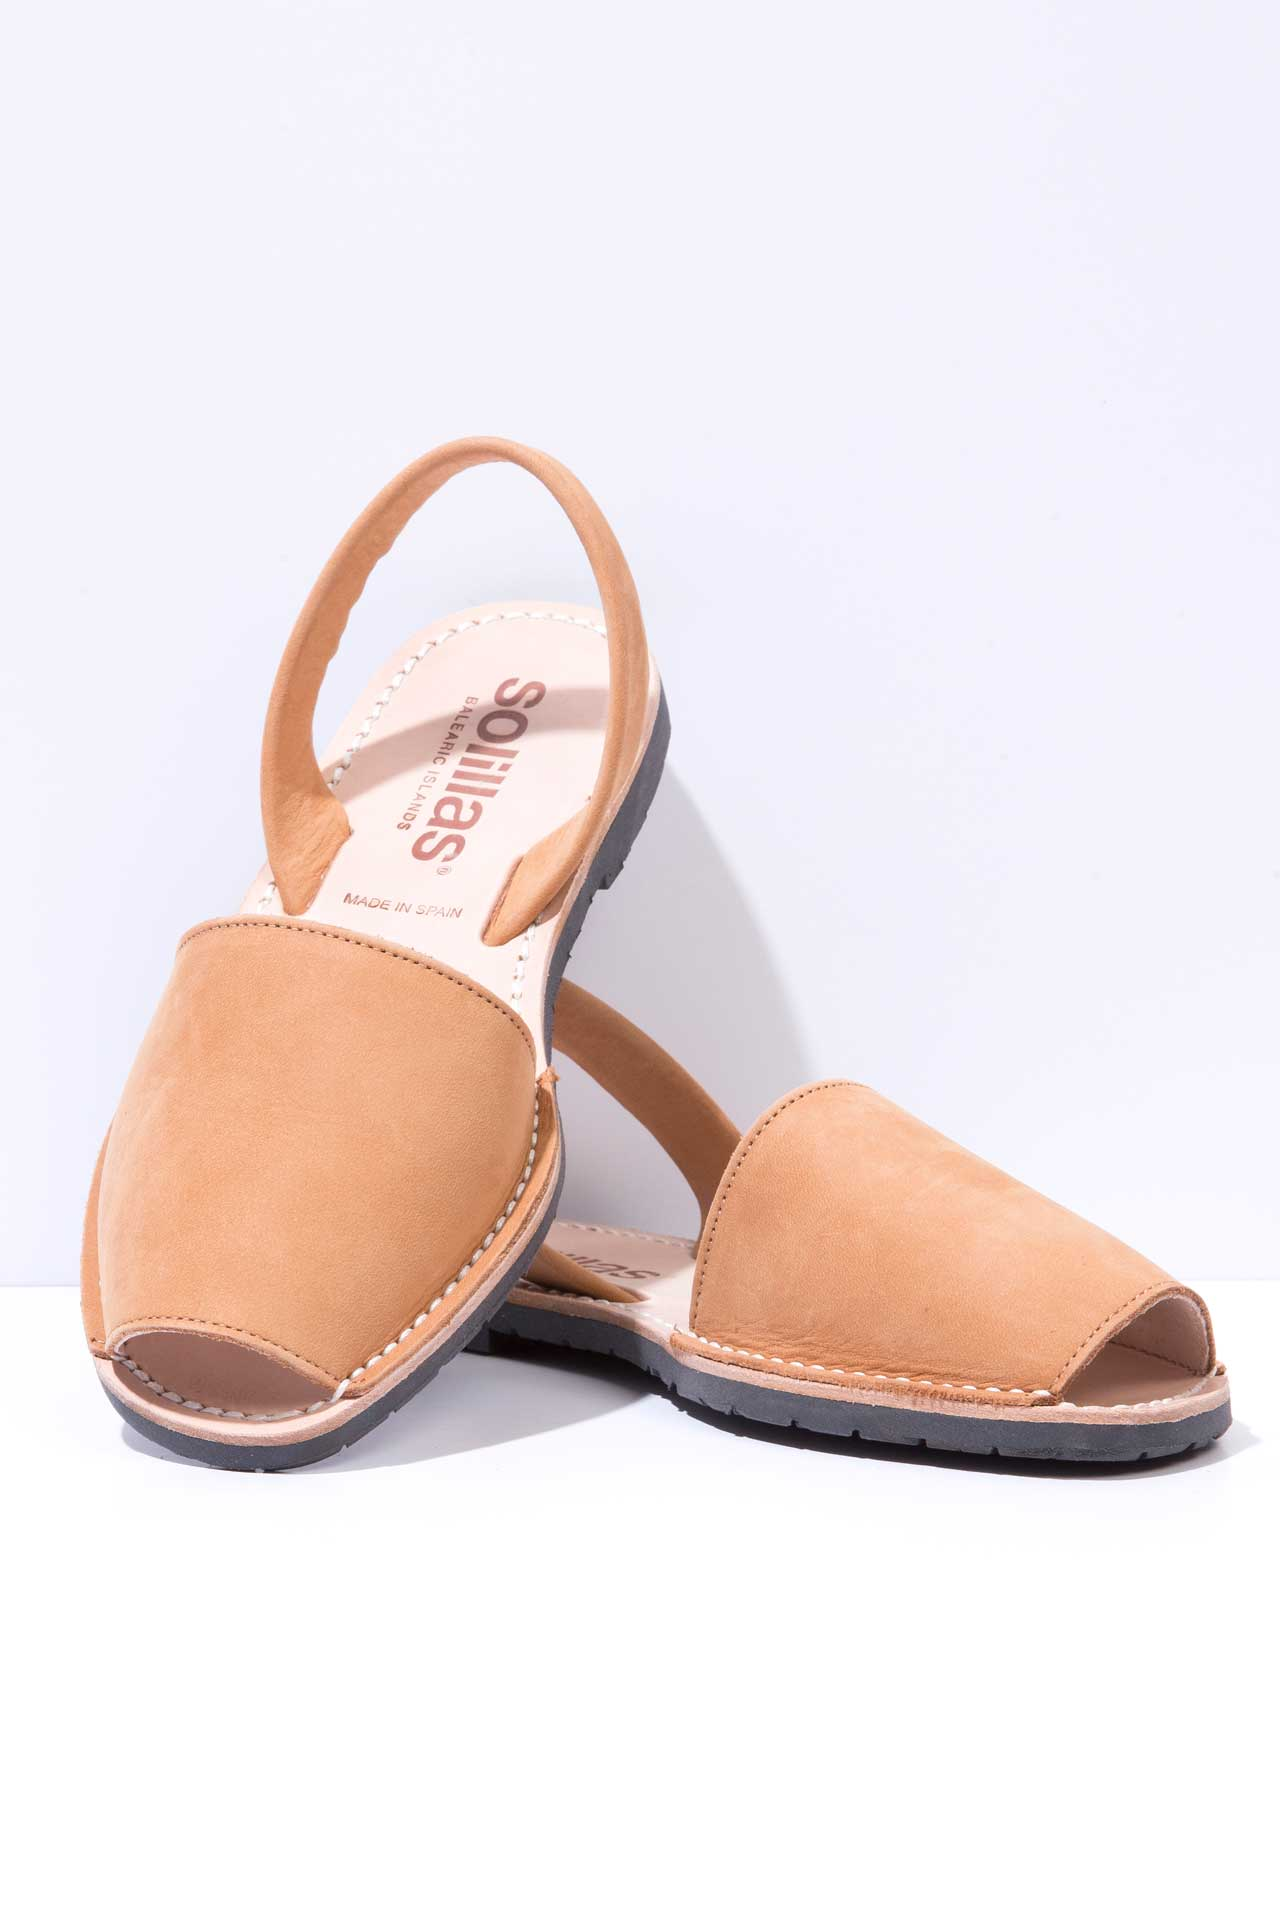 Cuero - Nubuck Leather Menorcan sandals